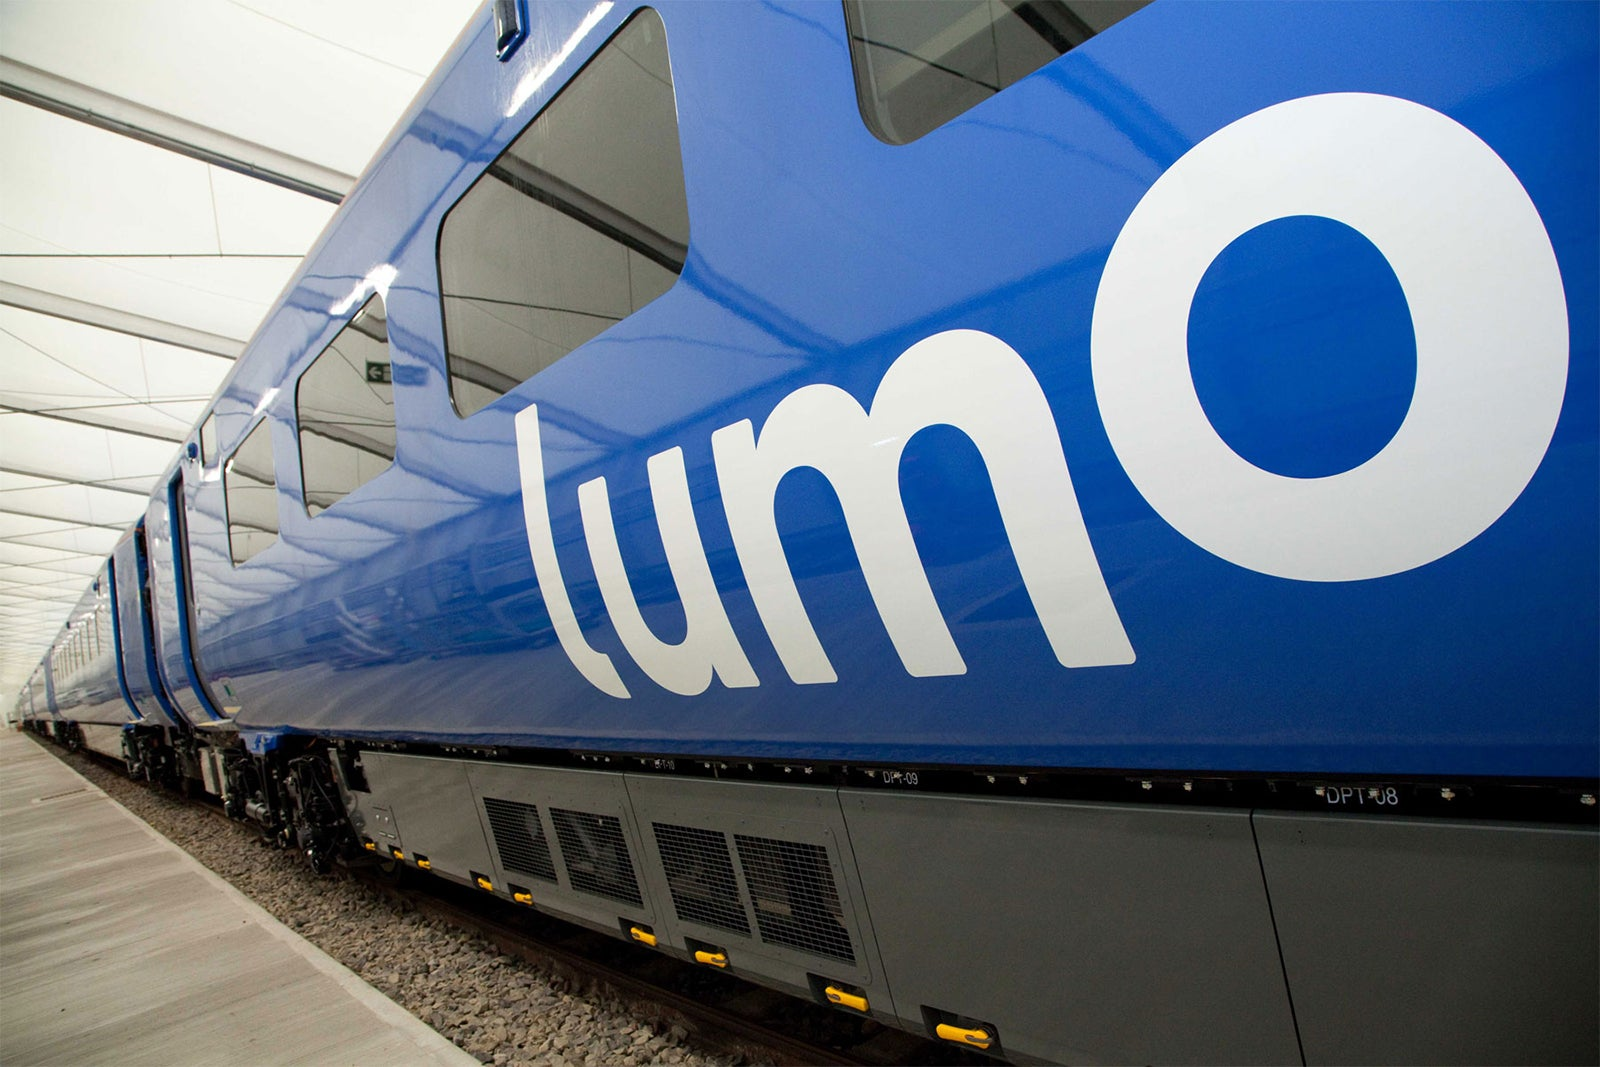 Everything you need to know about Lumo, the discount train service between London and Edinburgh - The Points Guy UK